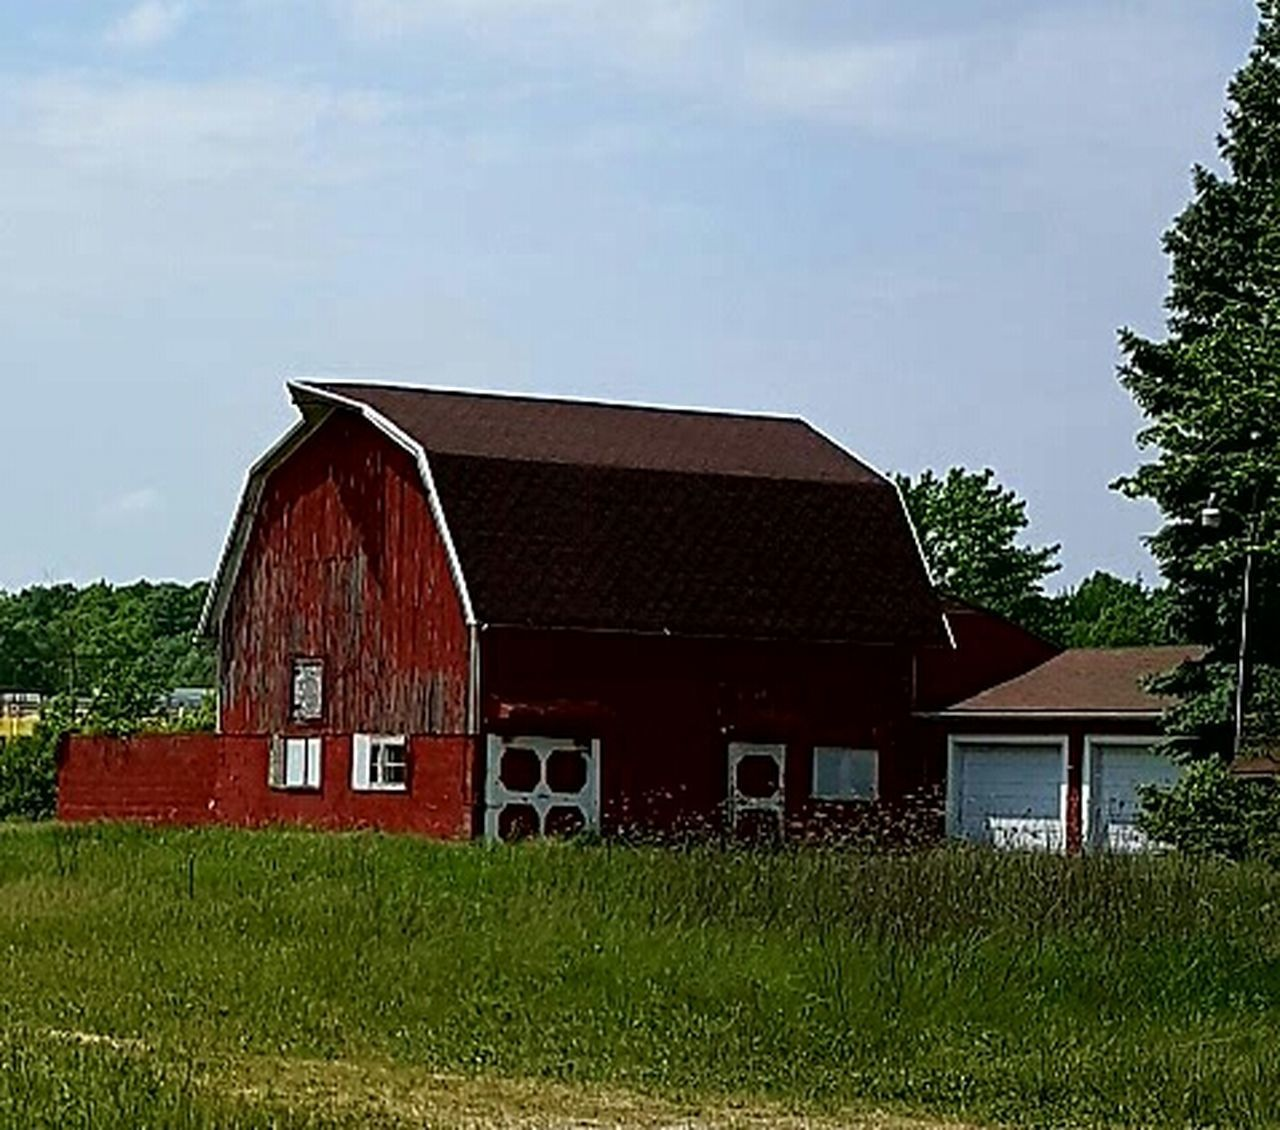 built structure, house, grass, architecture, building exterior, barn, outdoors, no people, agriculture, day, rural scene, red, tree, sky, farmhouse, nature